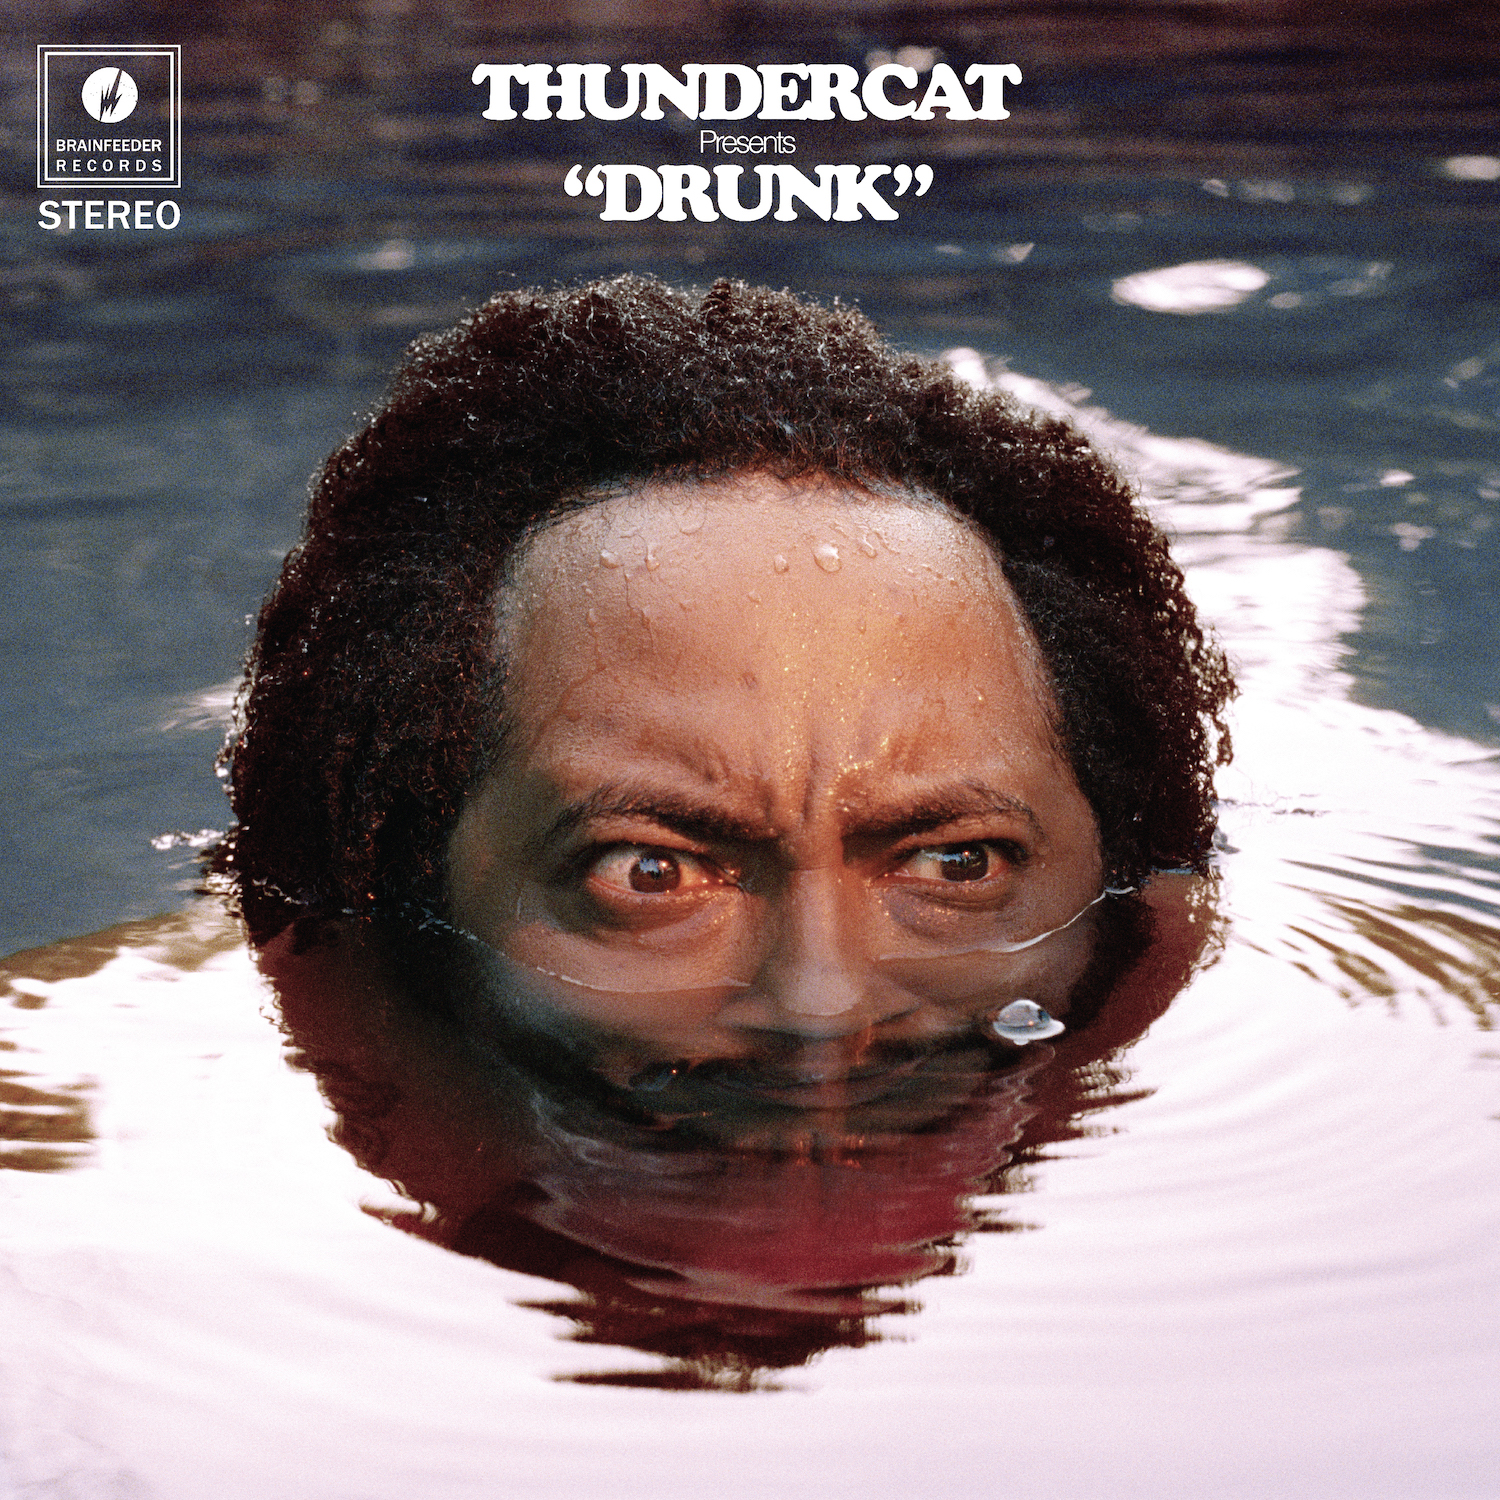 'Drunk' by Thundercat, album review by Gregory Adams. The full-length comes out on February 24th via Brainfeeder.